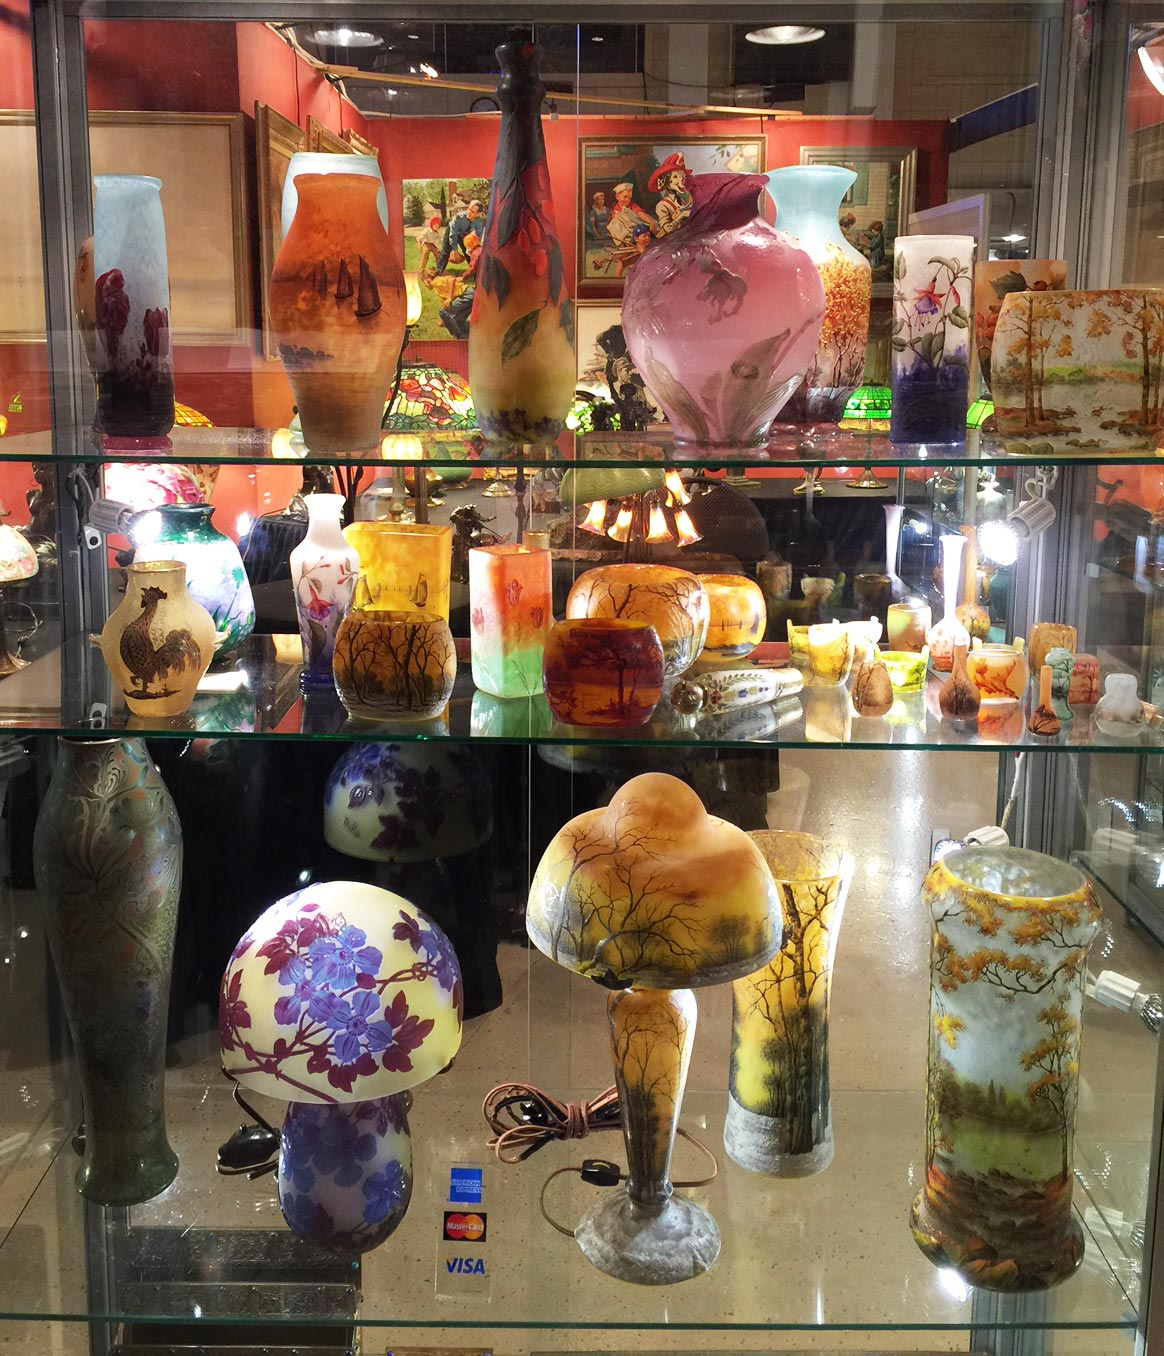 We displayed most of our Daum Nancy glass in this showcase